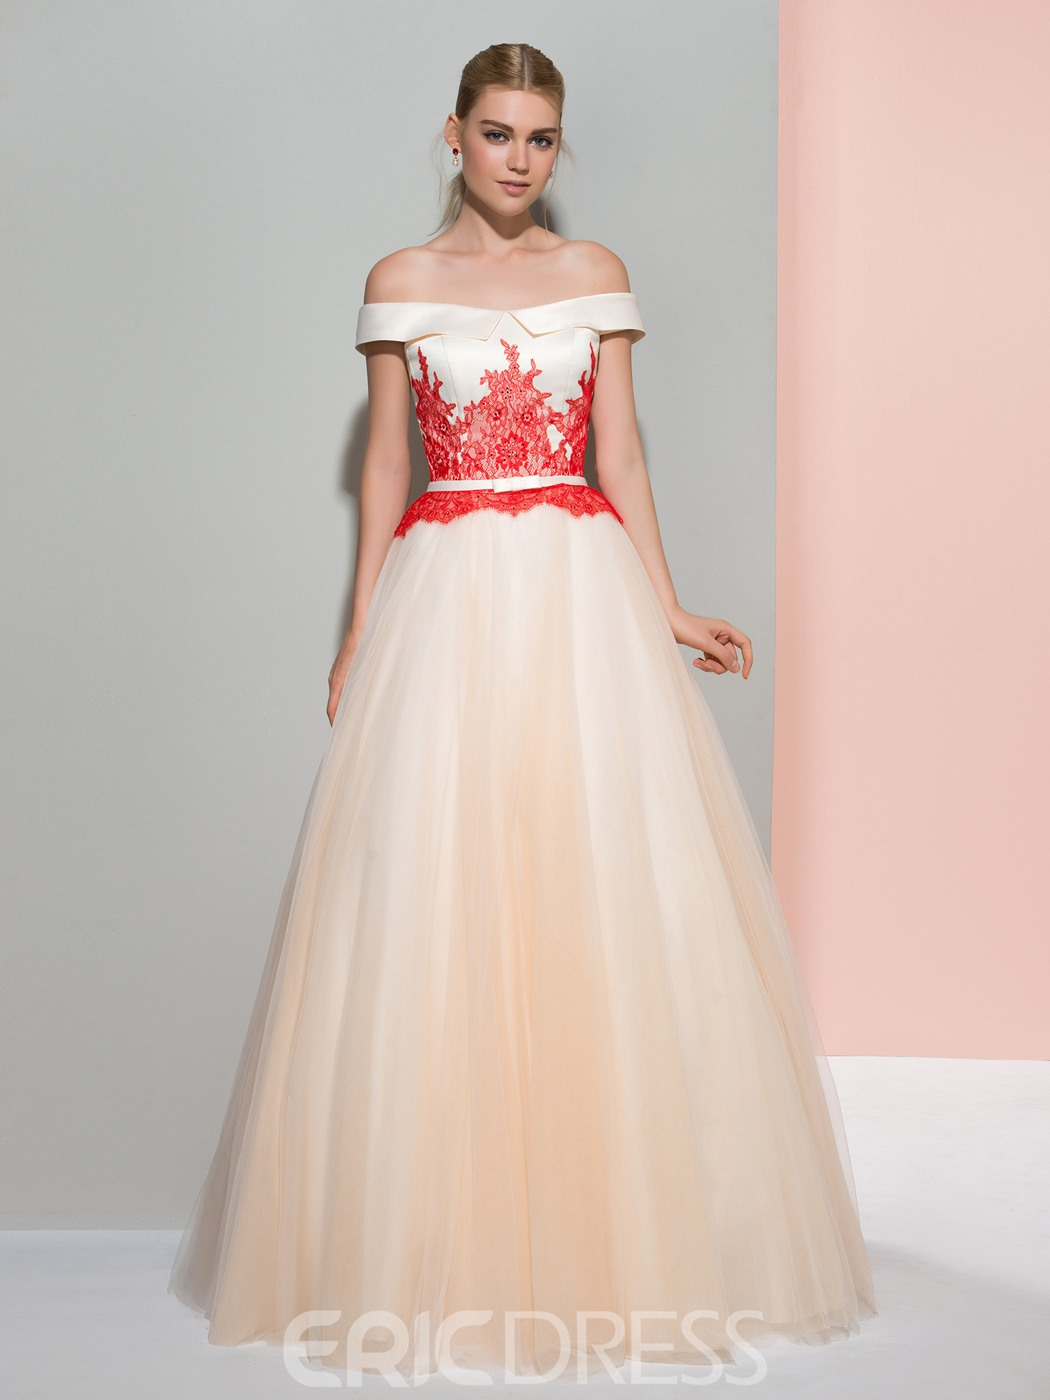 085092fc0eb Ericdress A-Line Off-the-Shoulder Cap Sleeves Lace Sashes Evening Dress (12200389)